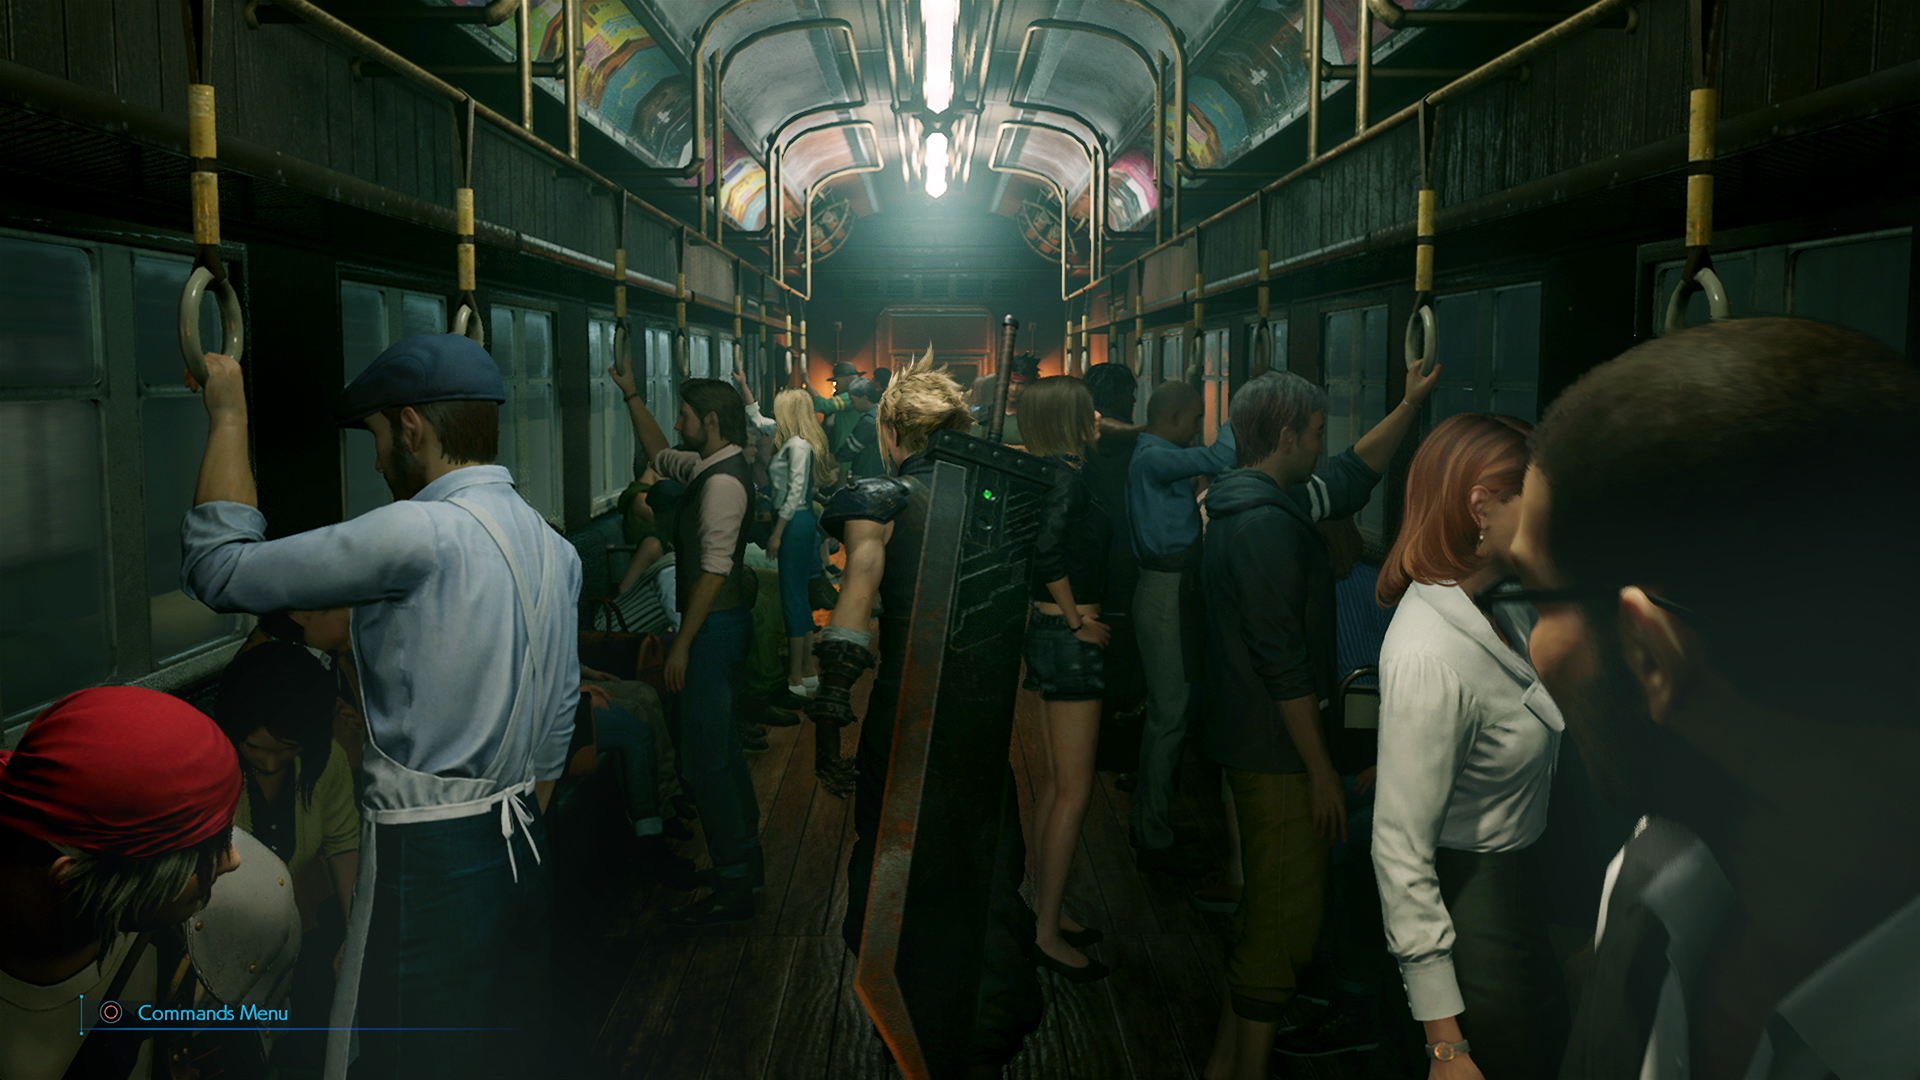 Final Fantasy VII Remake gets some new screenshots post-E3